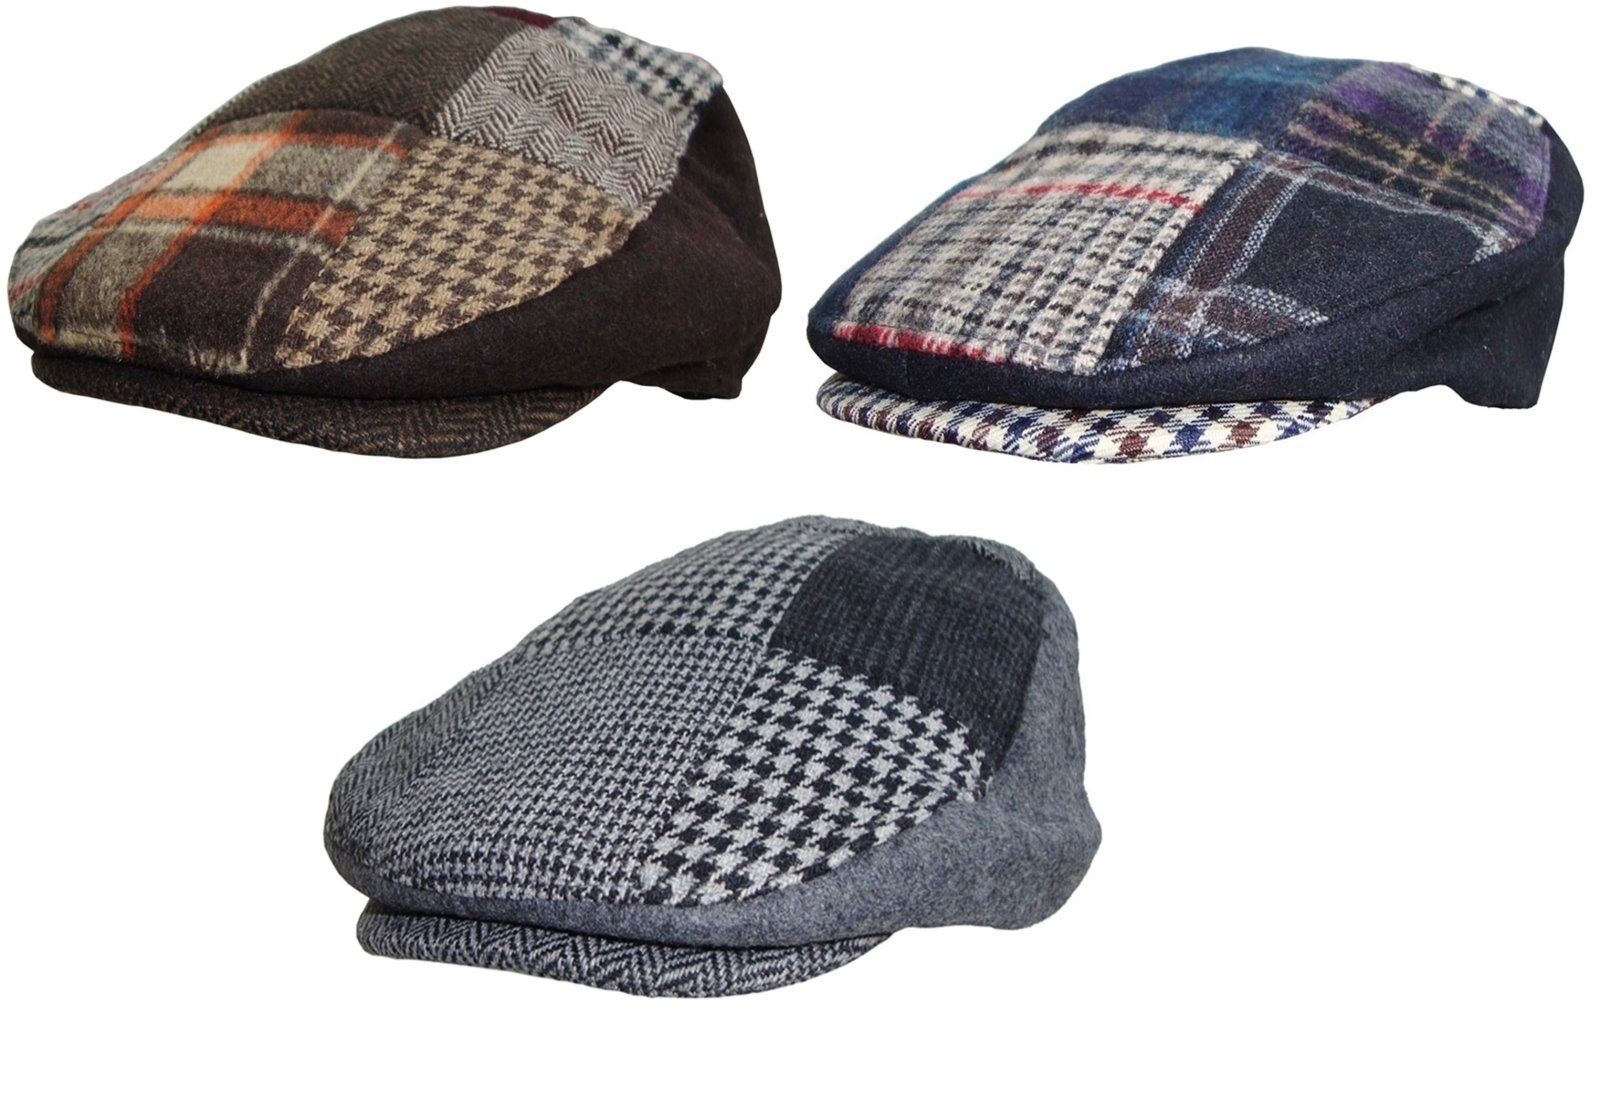 Details about Mens Patchwork Flat Cap Tweed Country Hat Peaked Country  Racing Cap df4b345d8b3